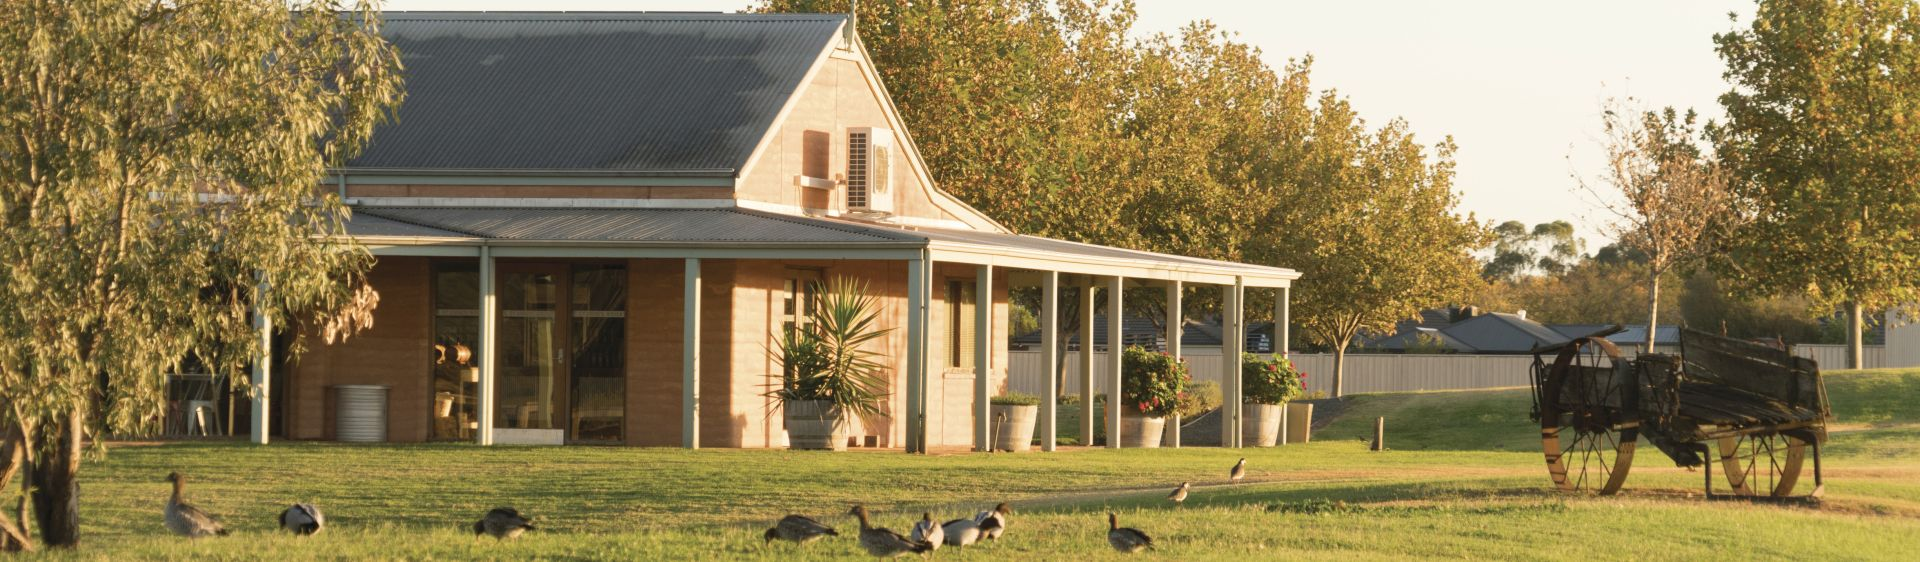 Ducks grazing on the lawns at St. Anne's Winery, Moama